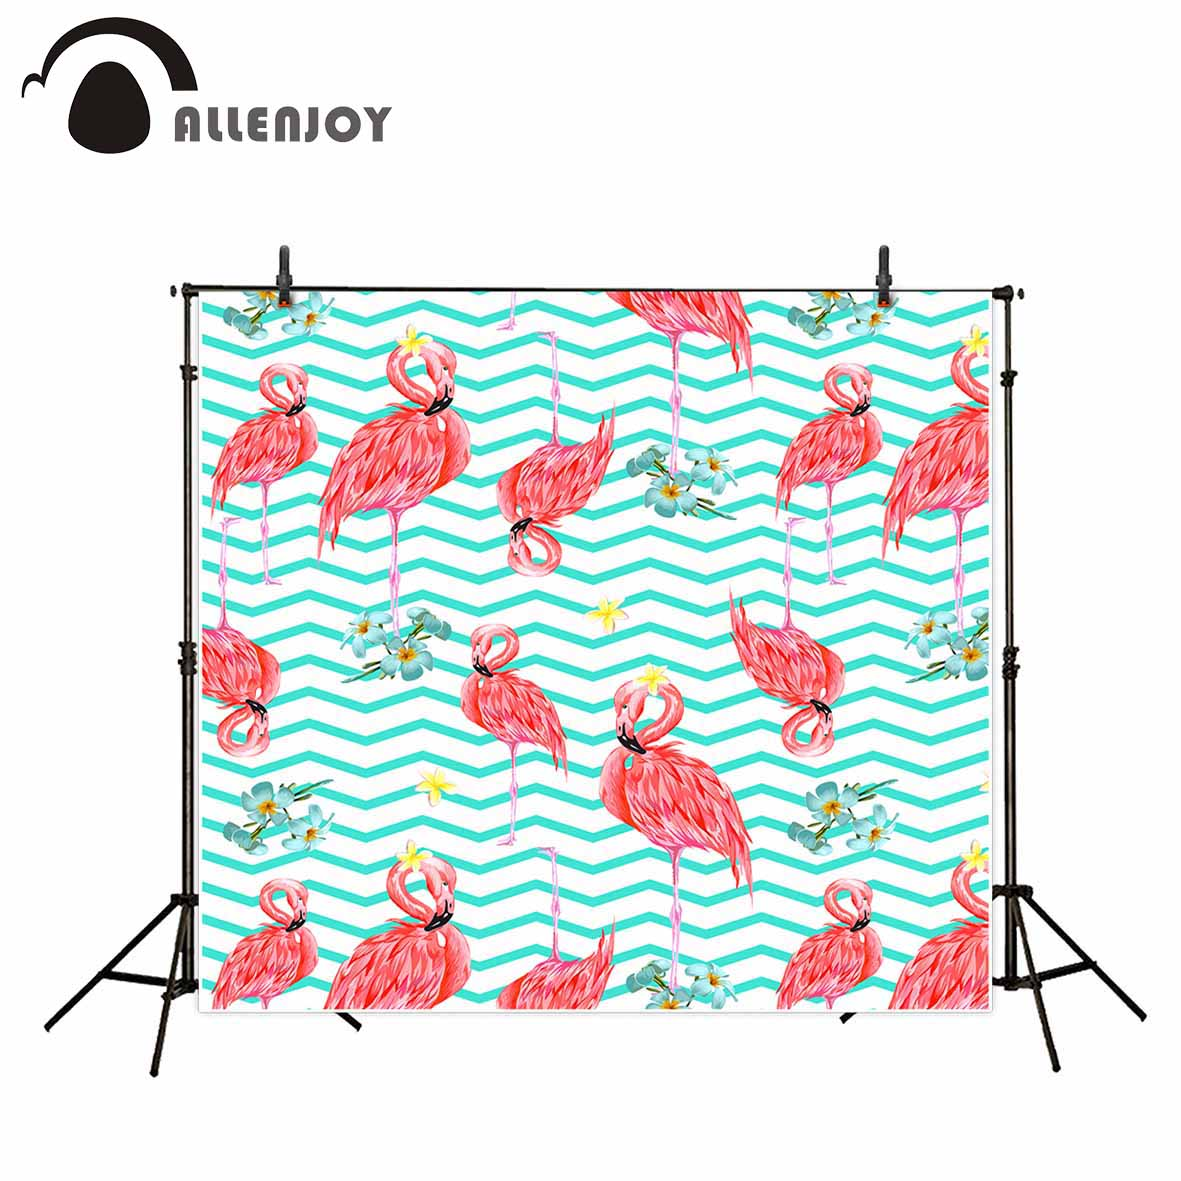 Allenjoy pink flamingo flowers green stripes chevron photography backdrops cartoon children birthday custom photo background allenjoy photography backdrops pink curtains stripes birthday background customize photo booth for a photo shoot vinyl backdrops